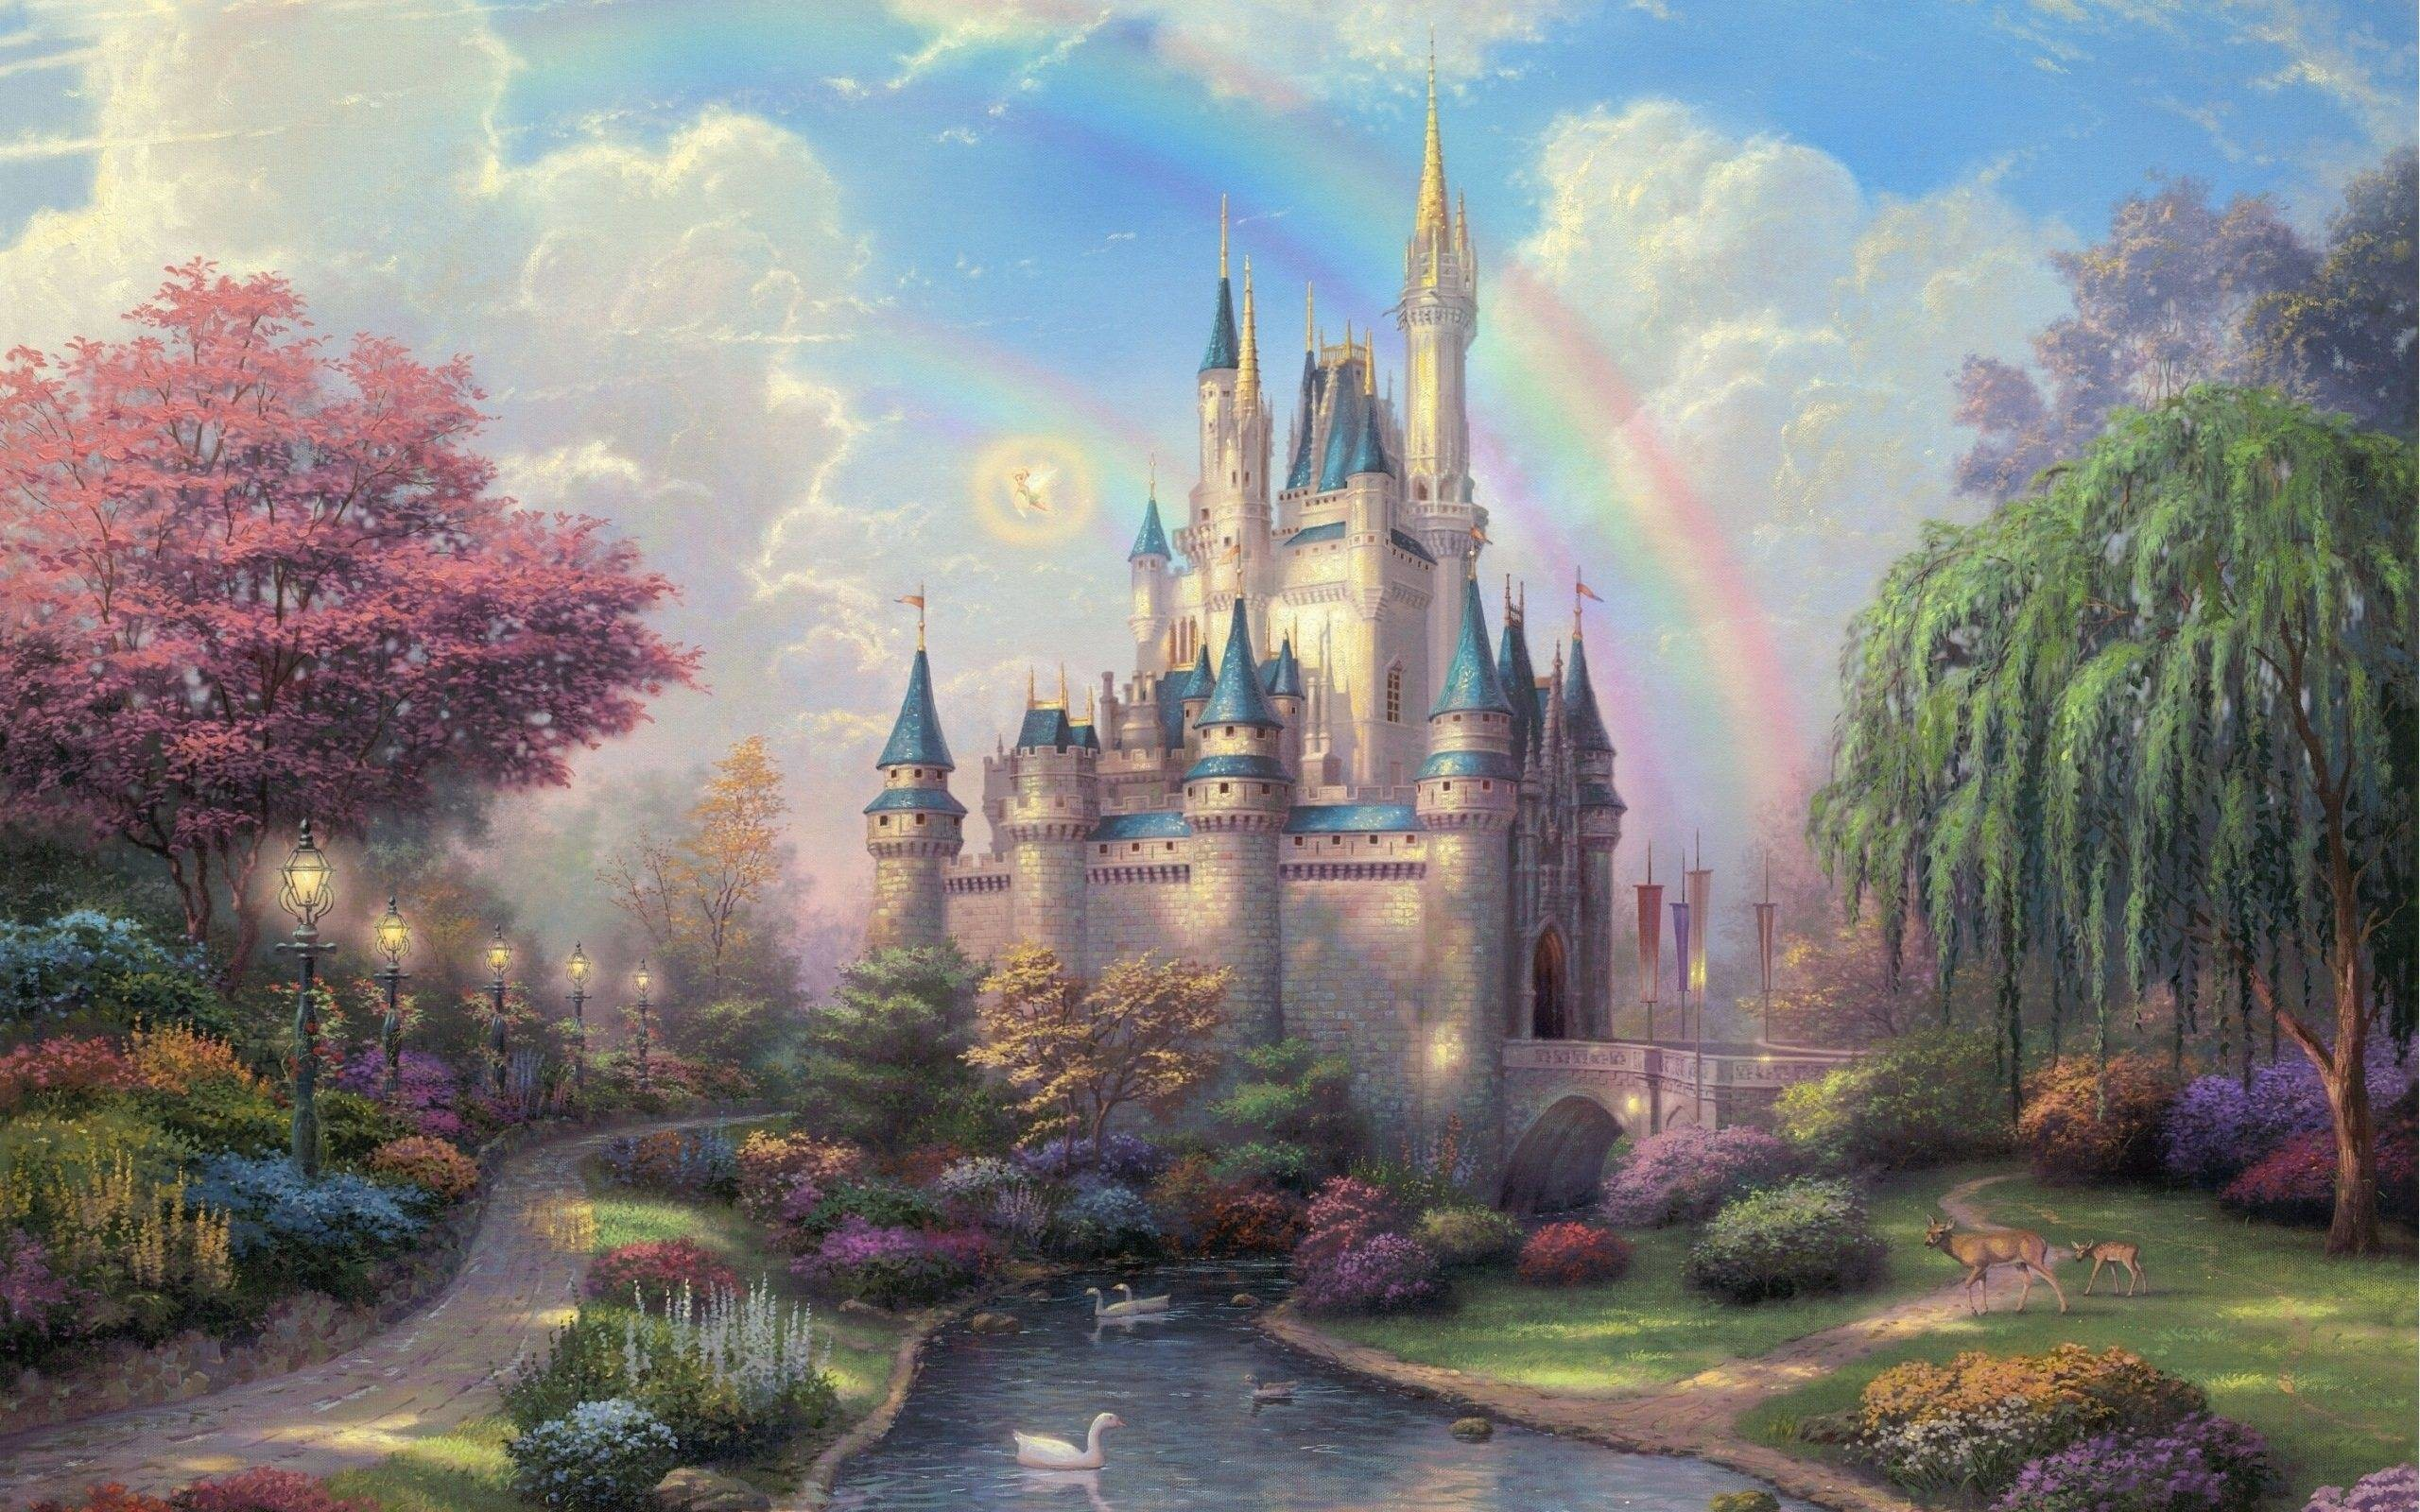 Castle Wall Wallpaper 45 Images Disney Princess Castle Giant Wall Decal ... Part 94